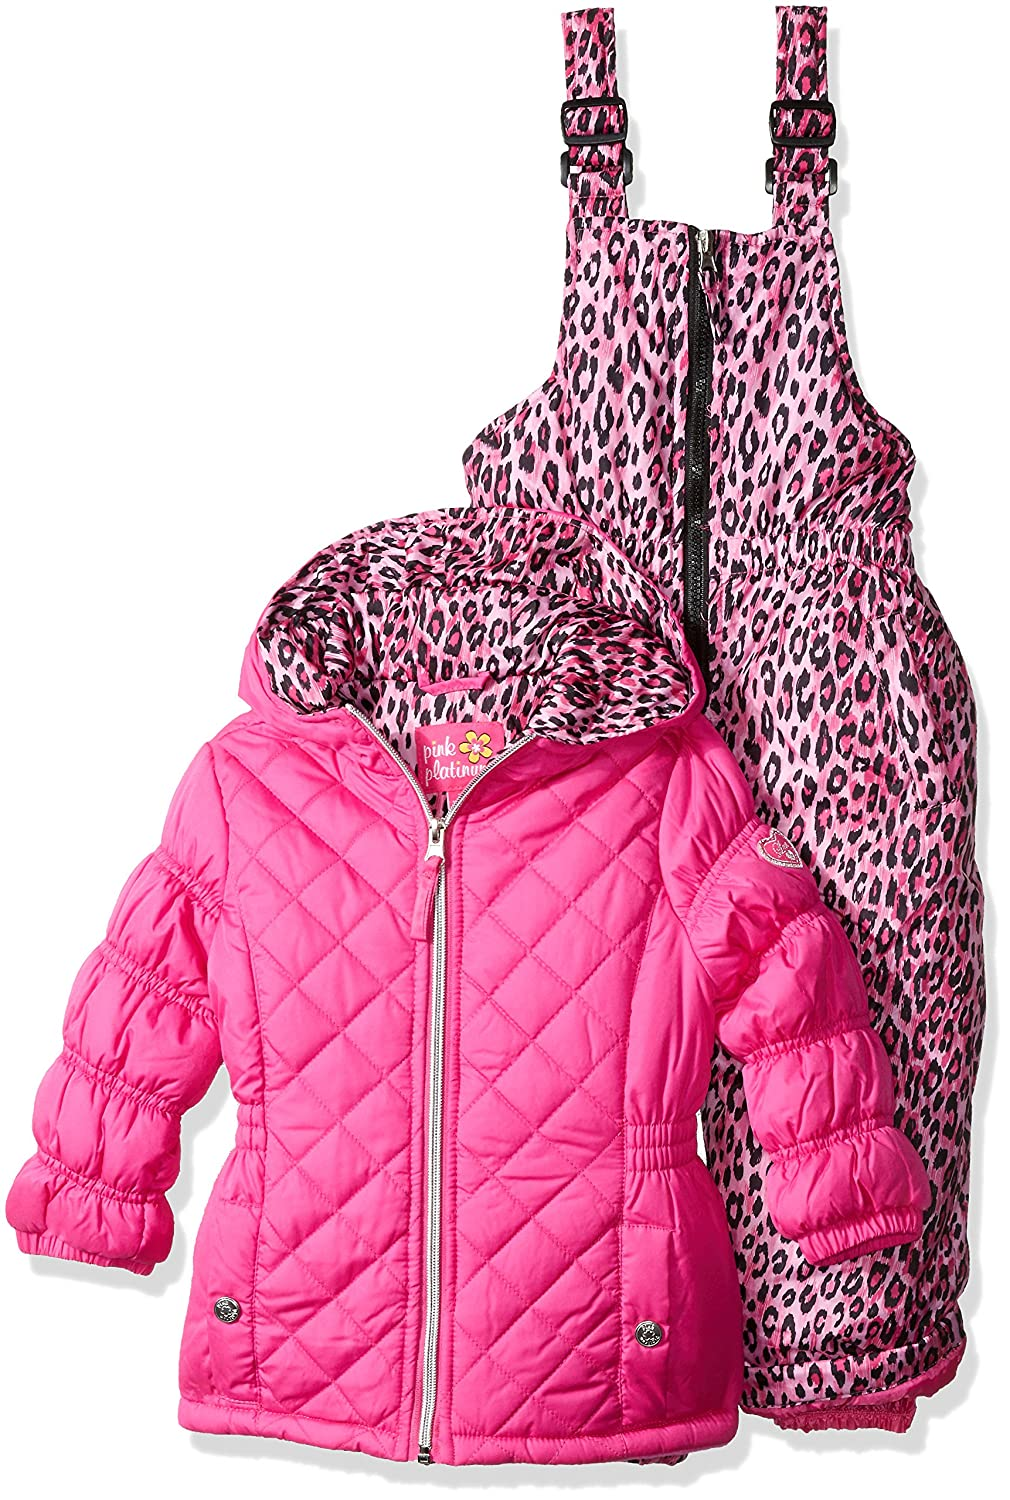 coat windbreaker spring flowers girls baby hooded platinum garden itm pink jacket